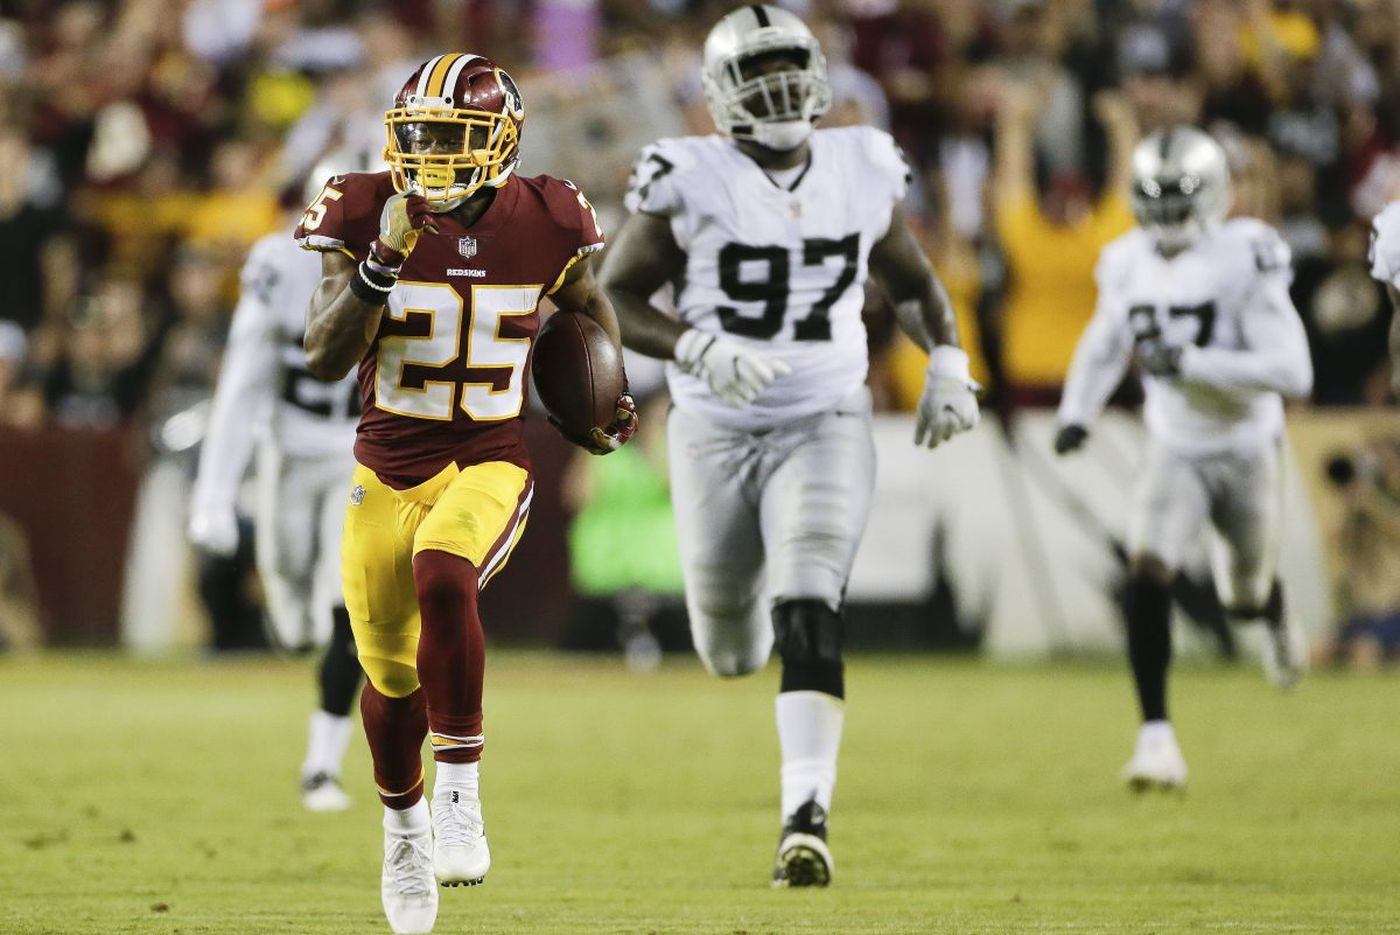 Eagles-Redskins scouting report